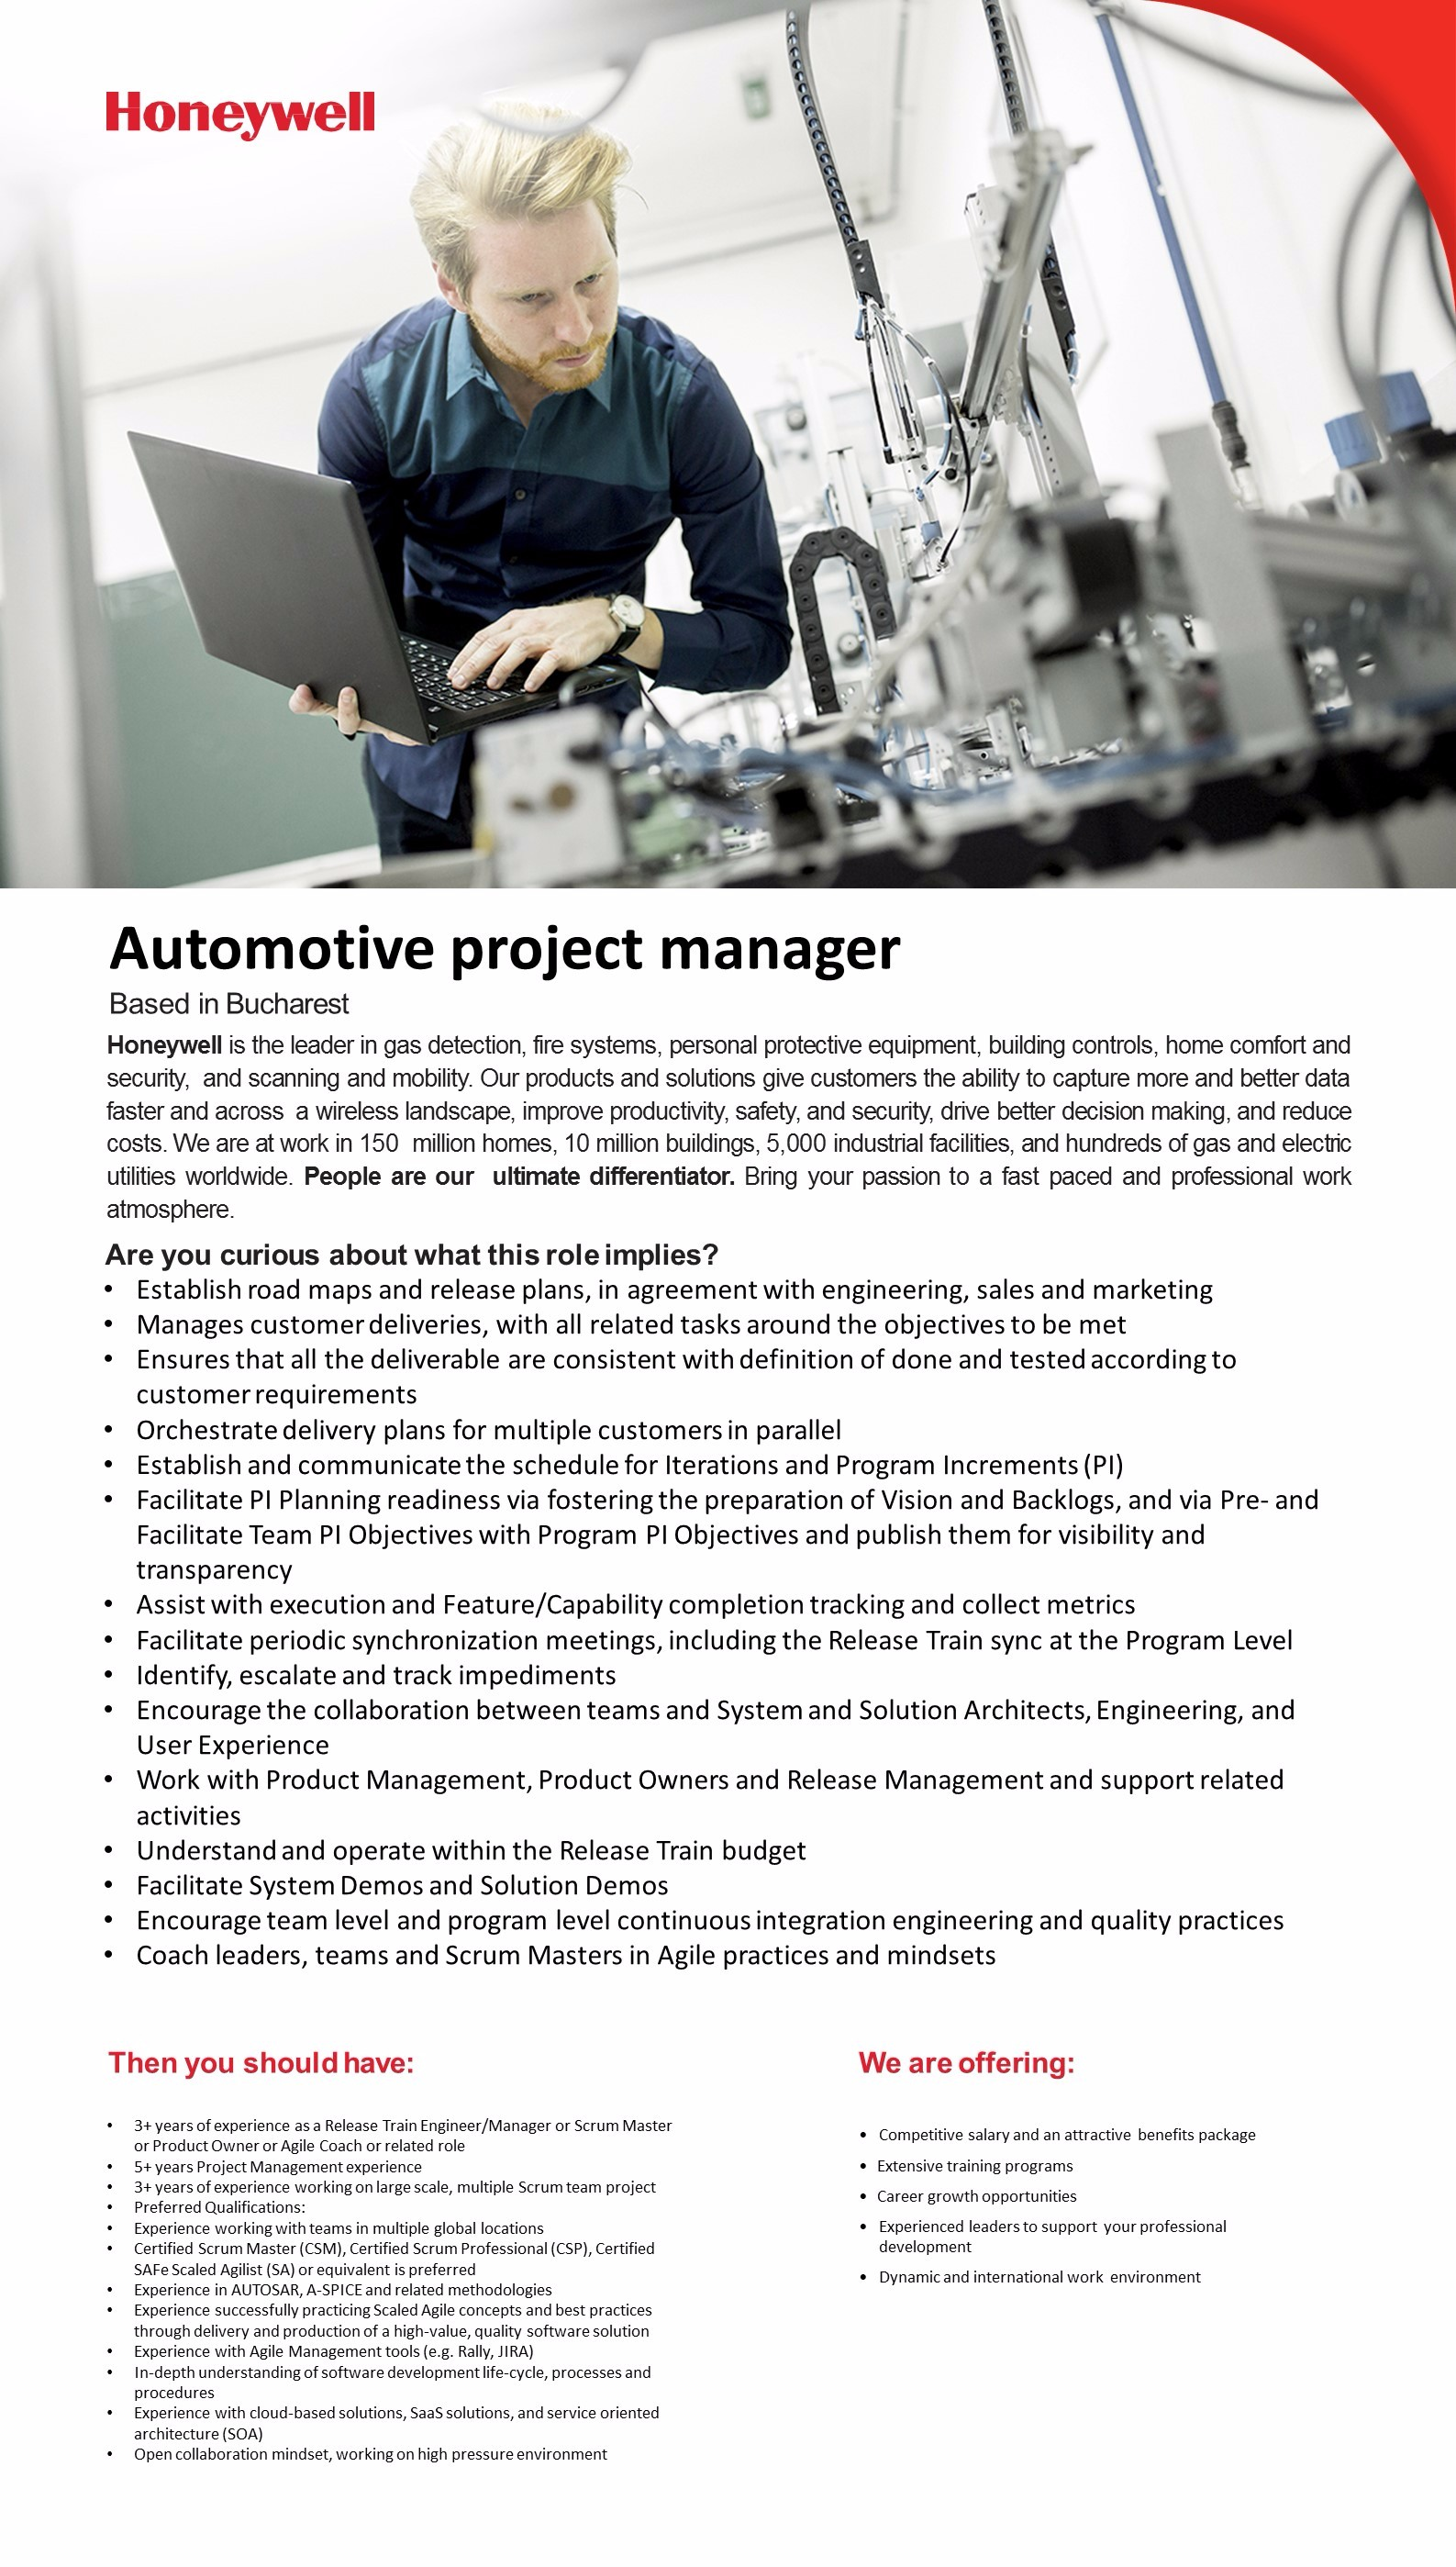 Automotive project manager